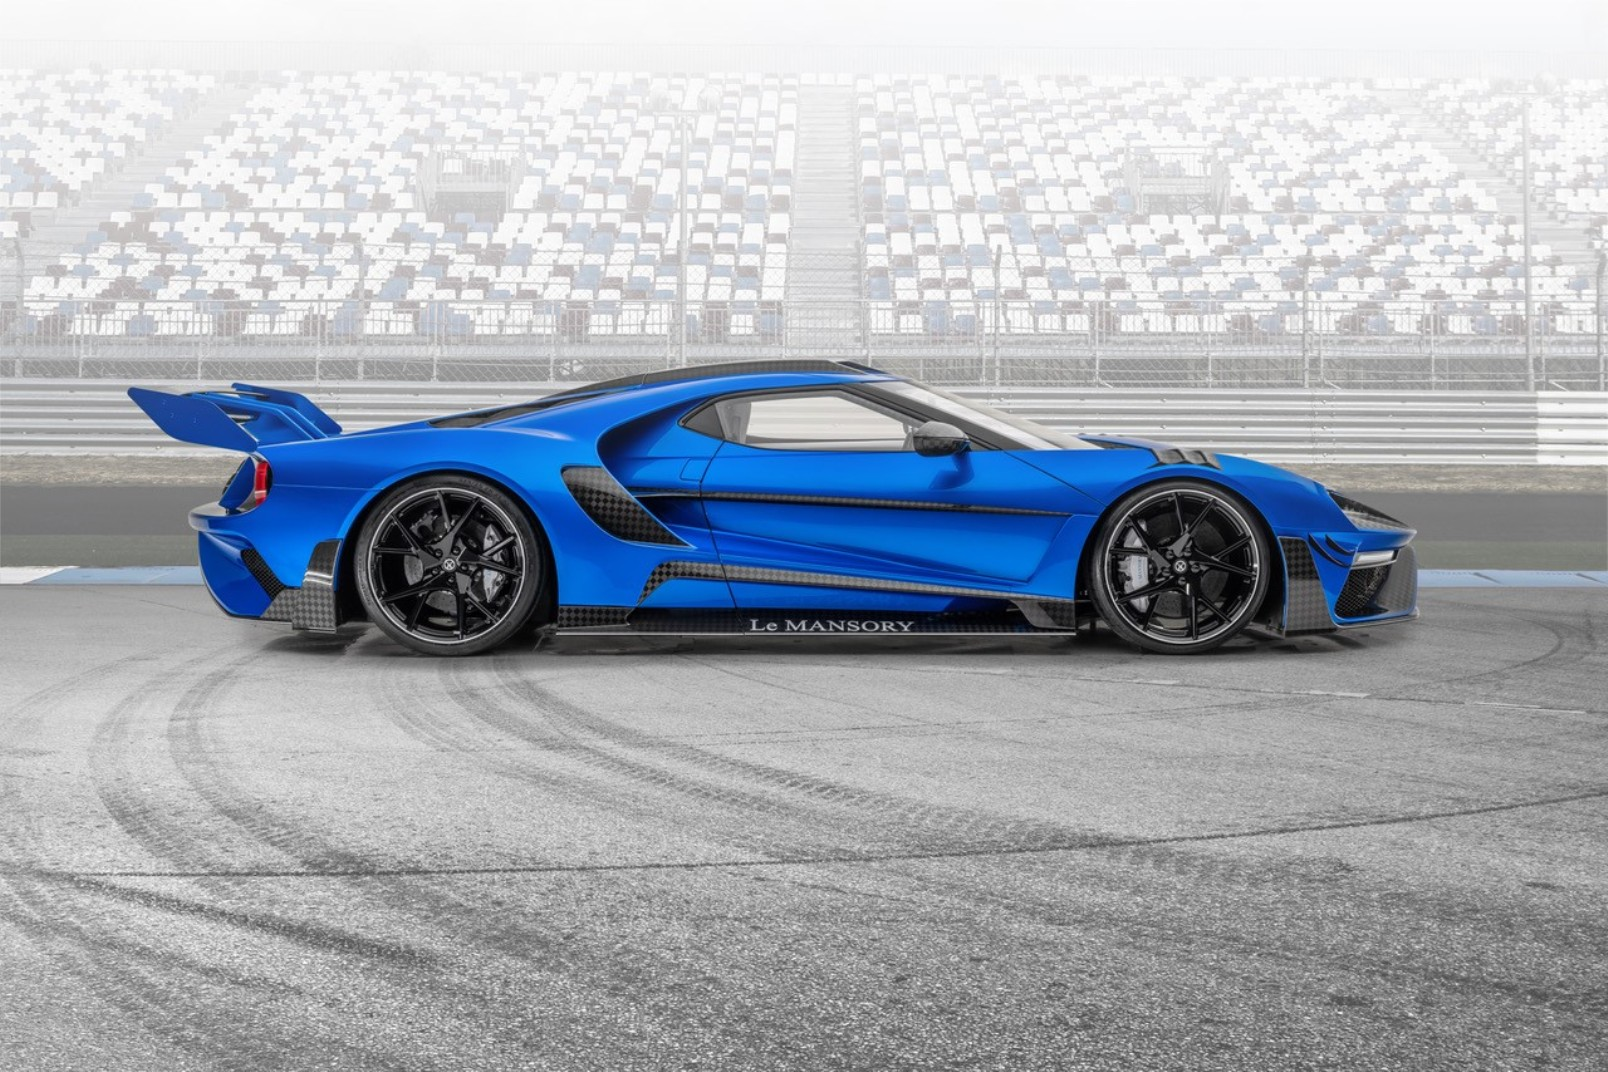 Ford Gt Le Mansory (12)